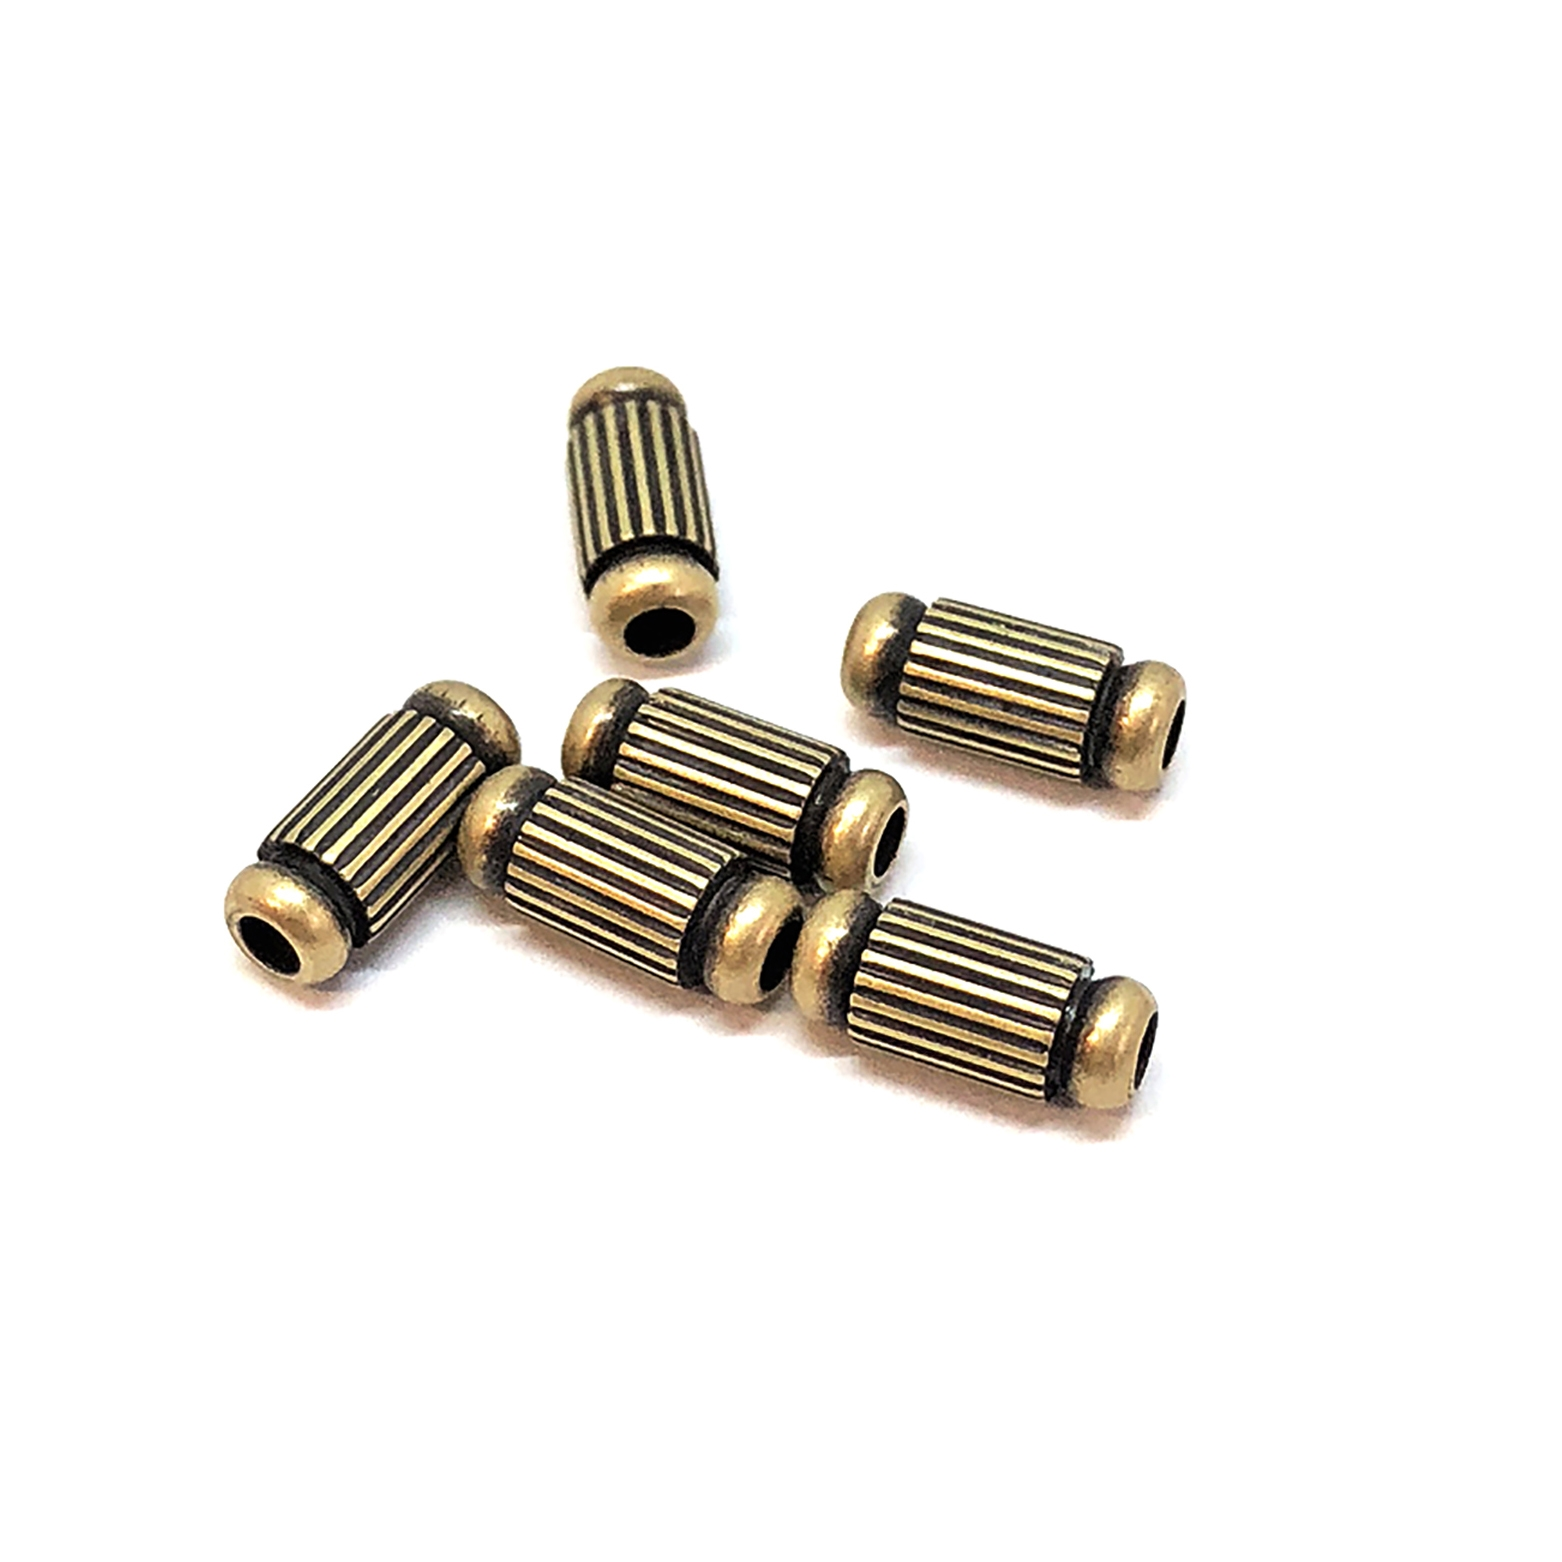 brass beads, industrial beads, brass ox, antique brass, 08980, b'sue boutiques, nickel free, us made, jewelry supplies, jewelry making, brass jewelry parts, steampunk, vintage supplies, vintage jewelry supplies, corrugated beads, bead, brass, 8x3mm